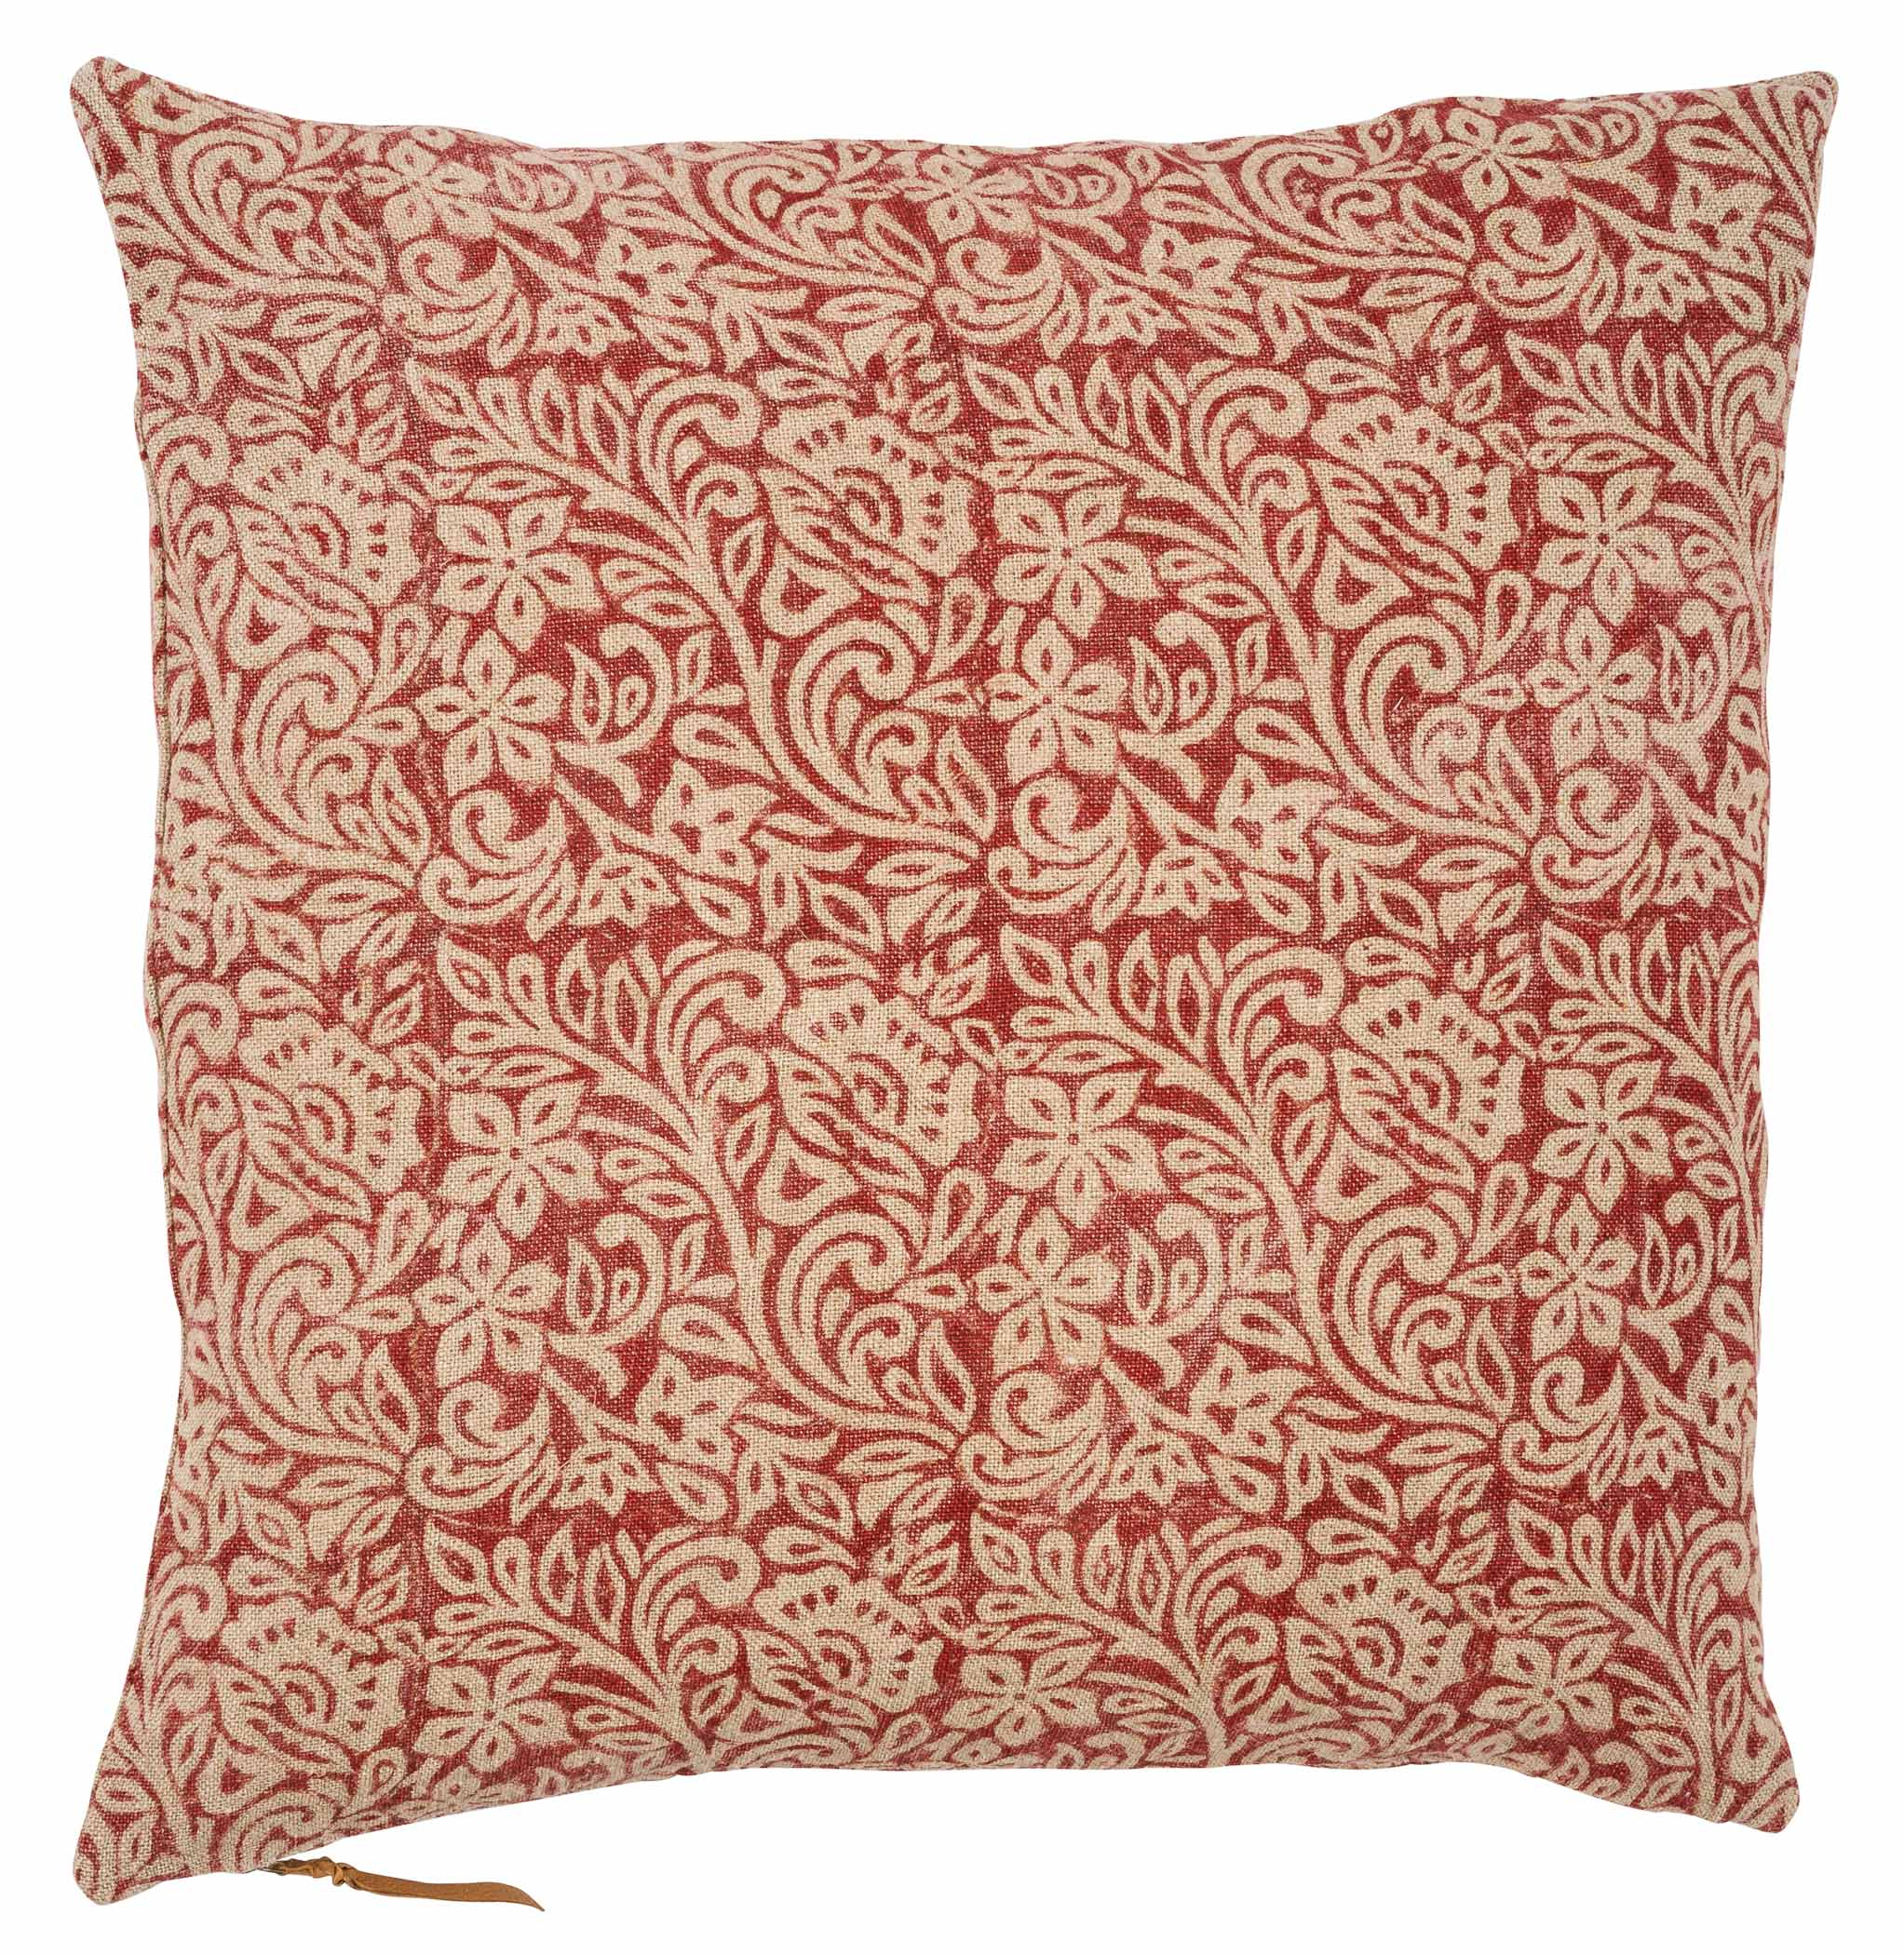 Cushion Cover - Jugend - Spicy Red